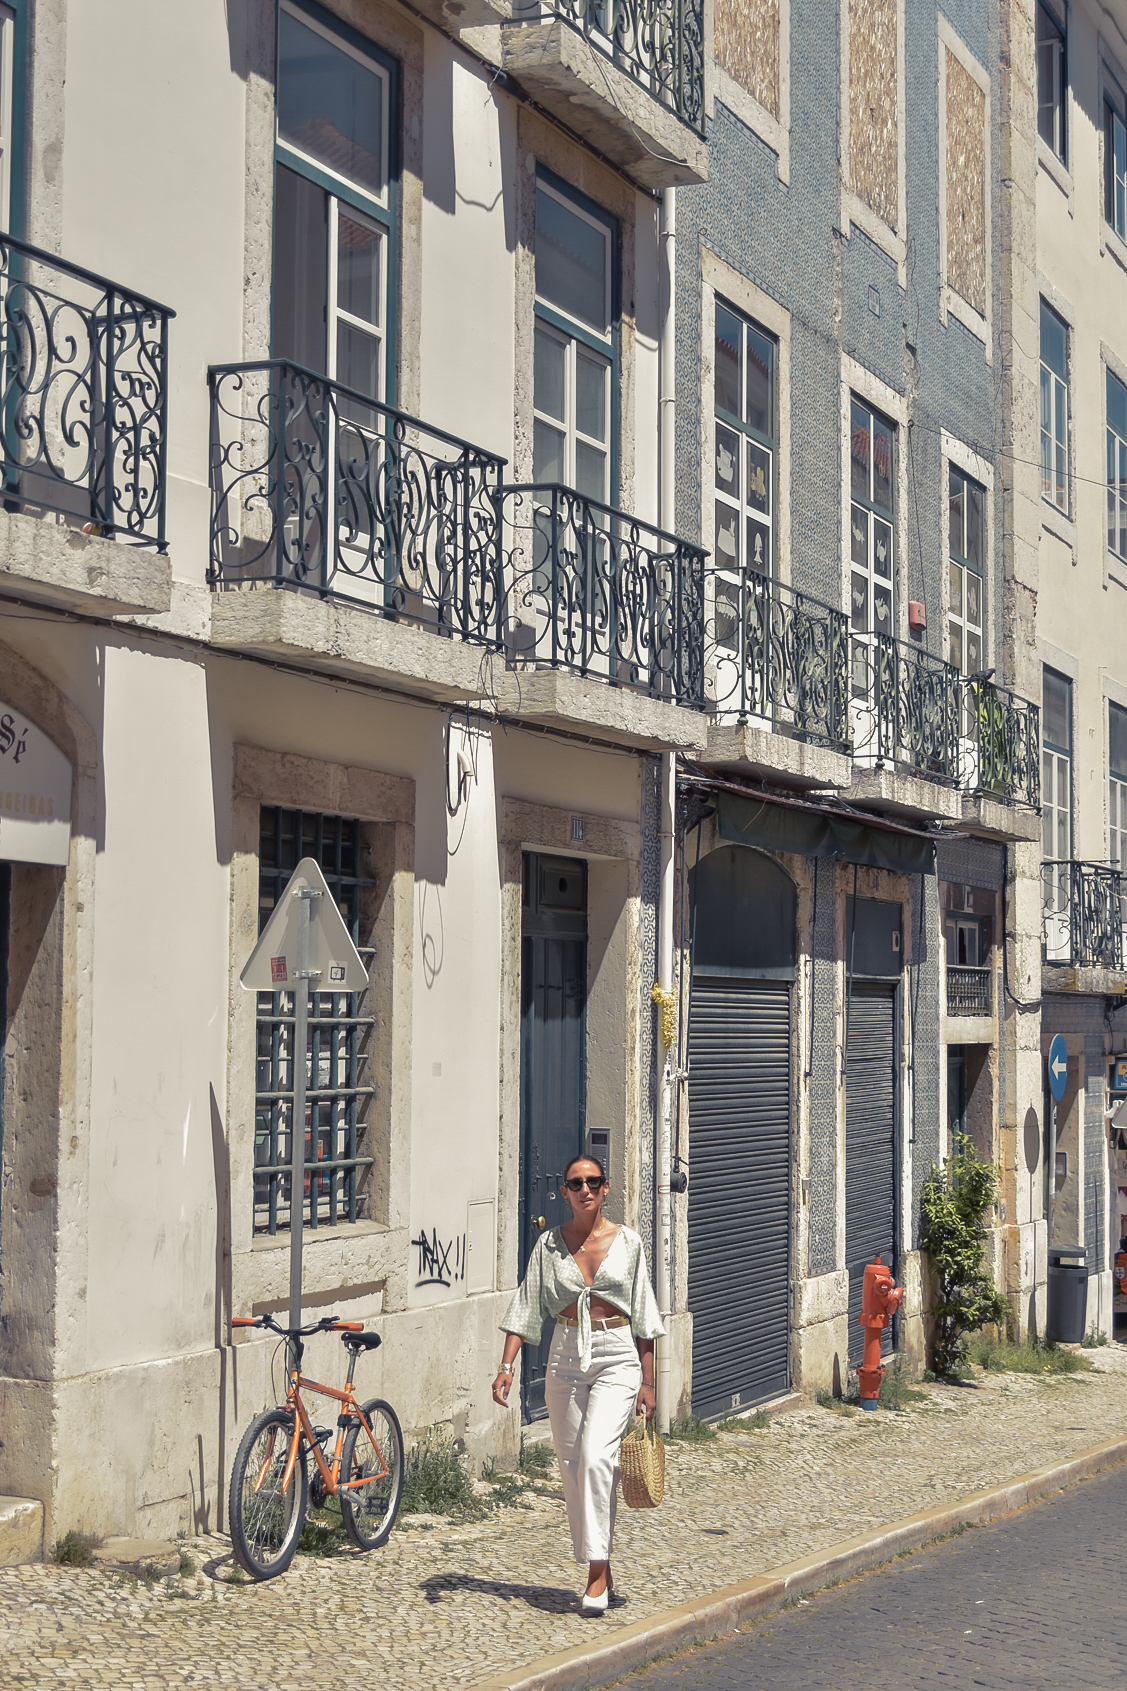 9-el-blog-de-silvia-travel-blogger-lisboa-barrio-alfama